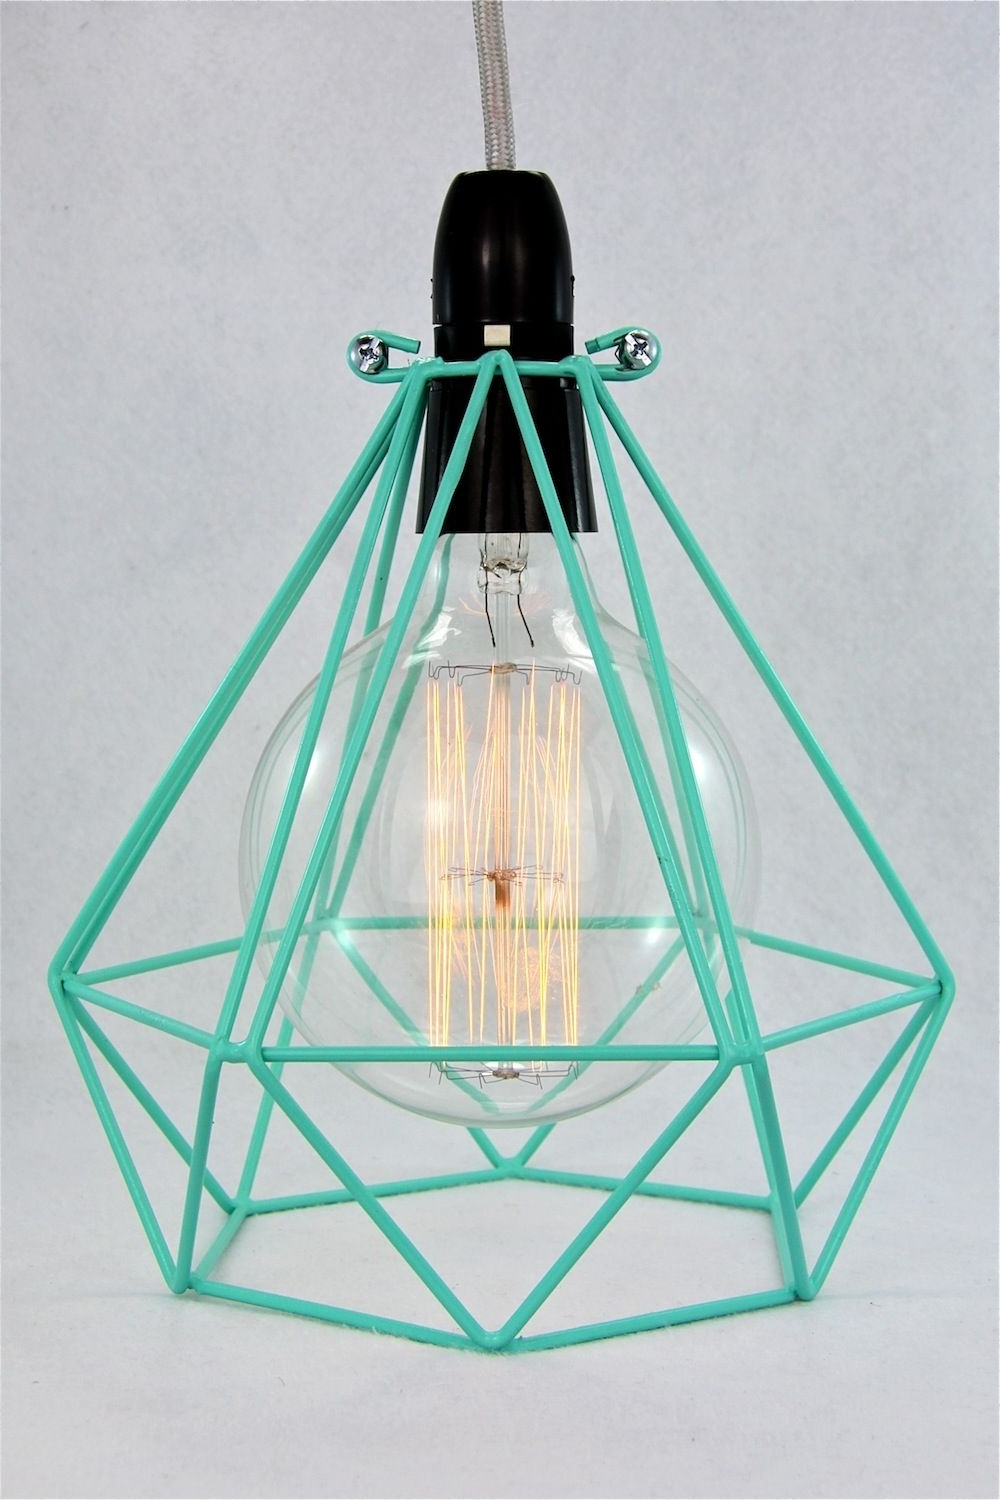 Diamond Wire Lamp Cage Pendant Cloth Cord Trouble Light Chandelier Within Well Liked Turquoise Gem Chandelier Lamps (View 13 of 20)